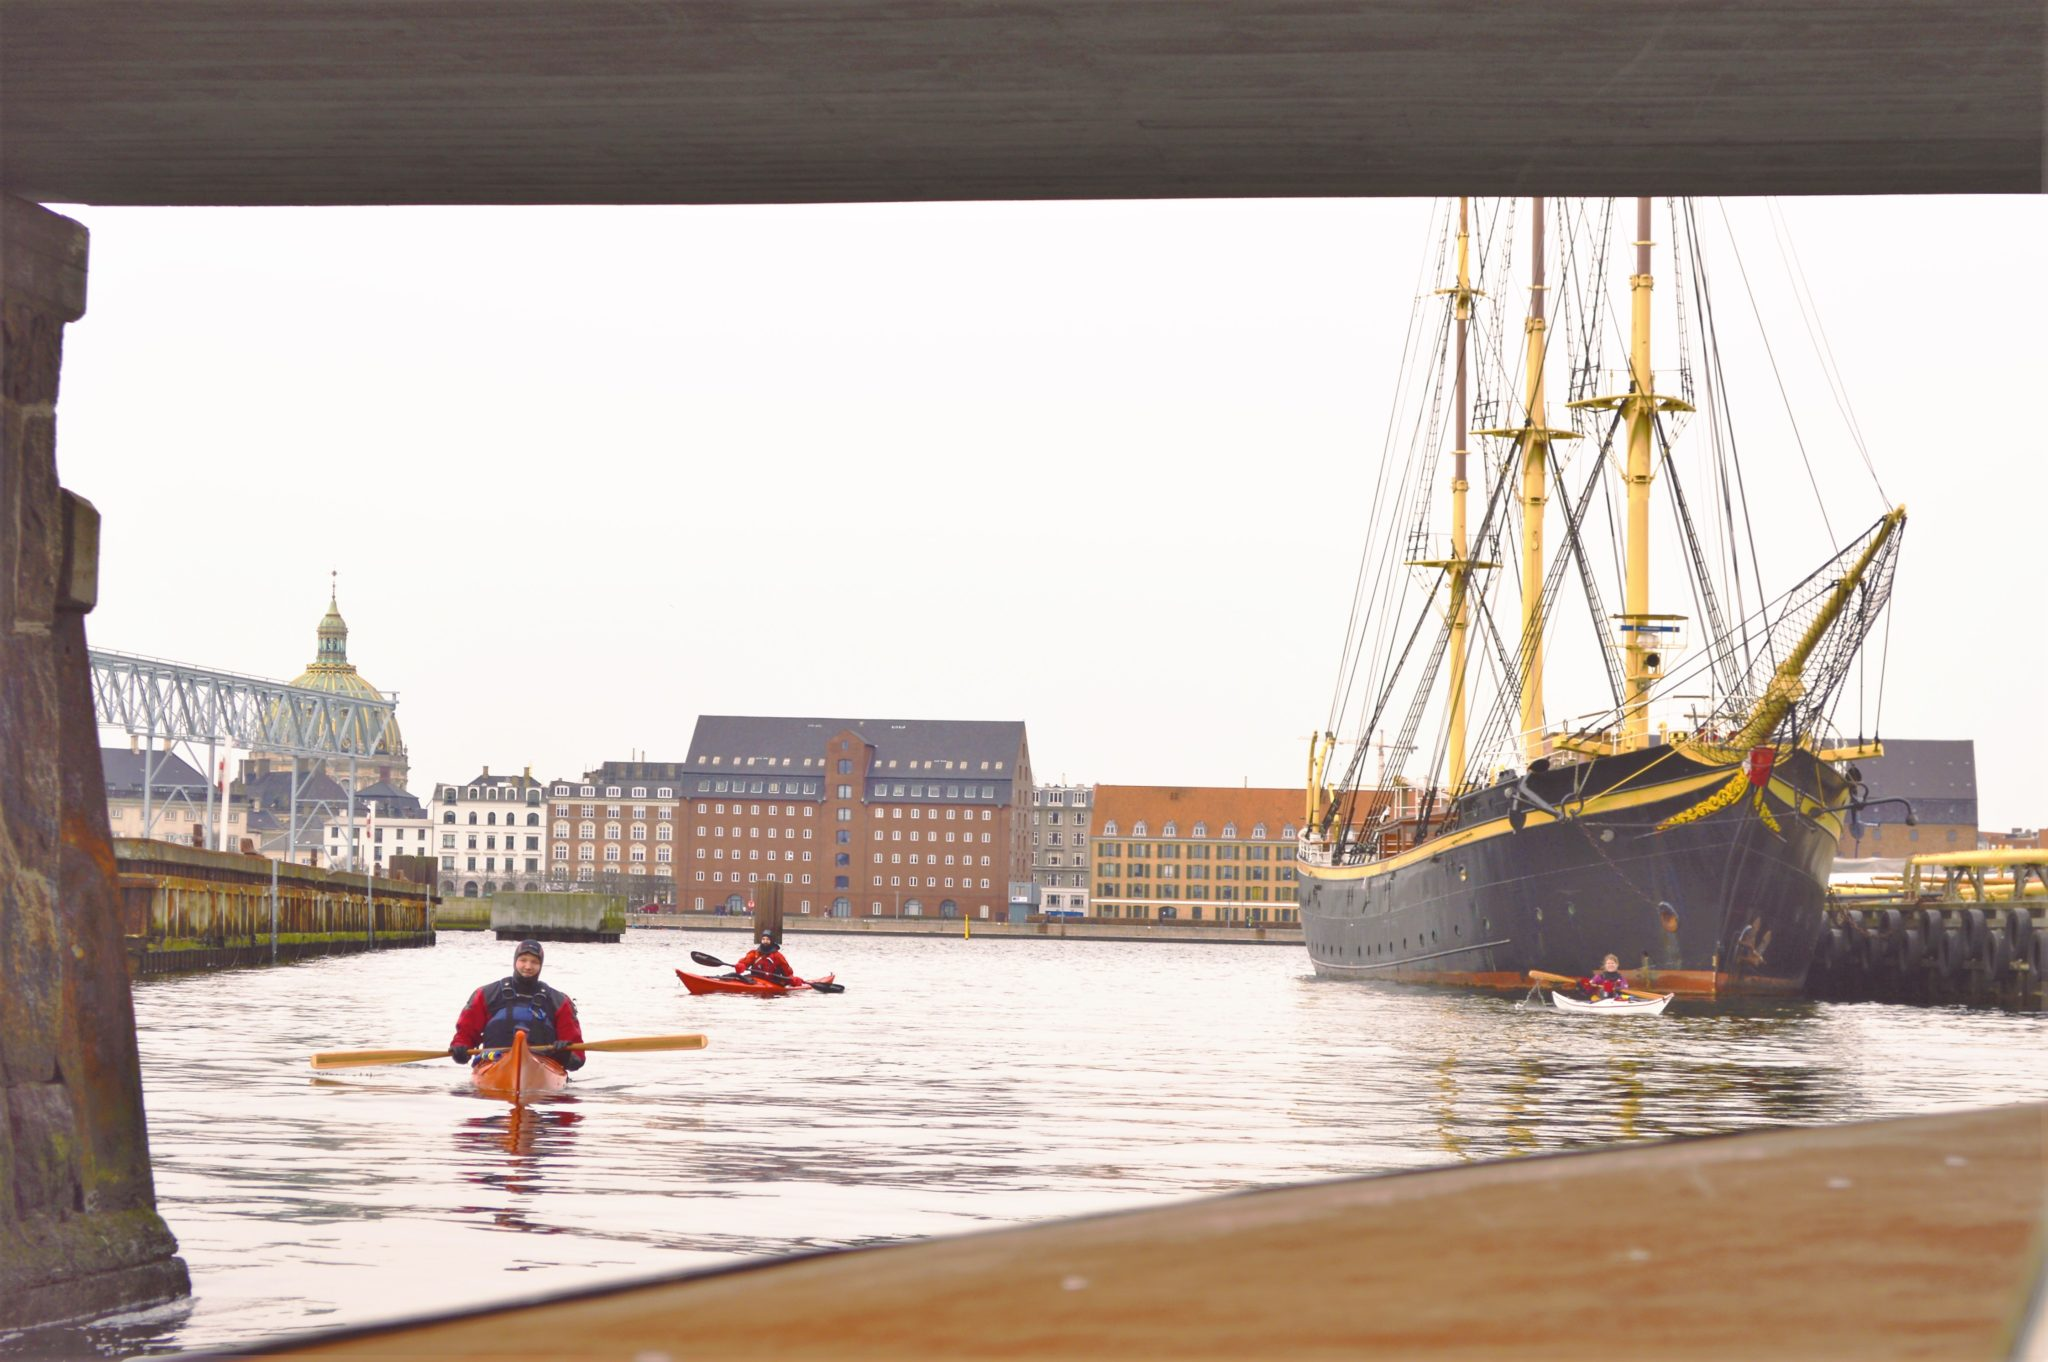 Kayakers in Copenhagen, Denmark